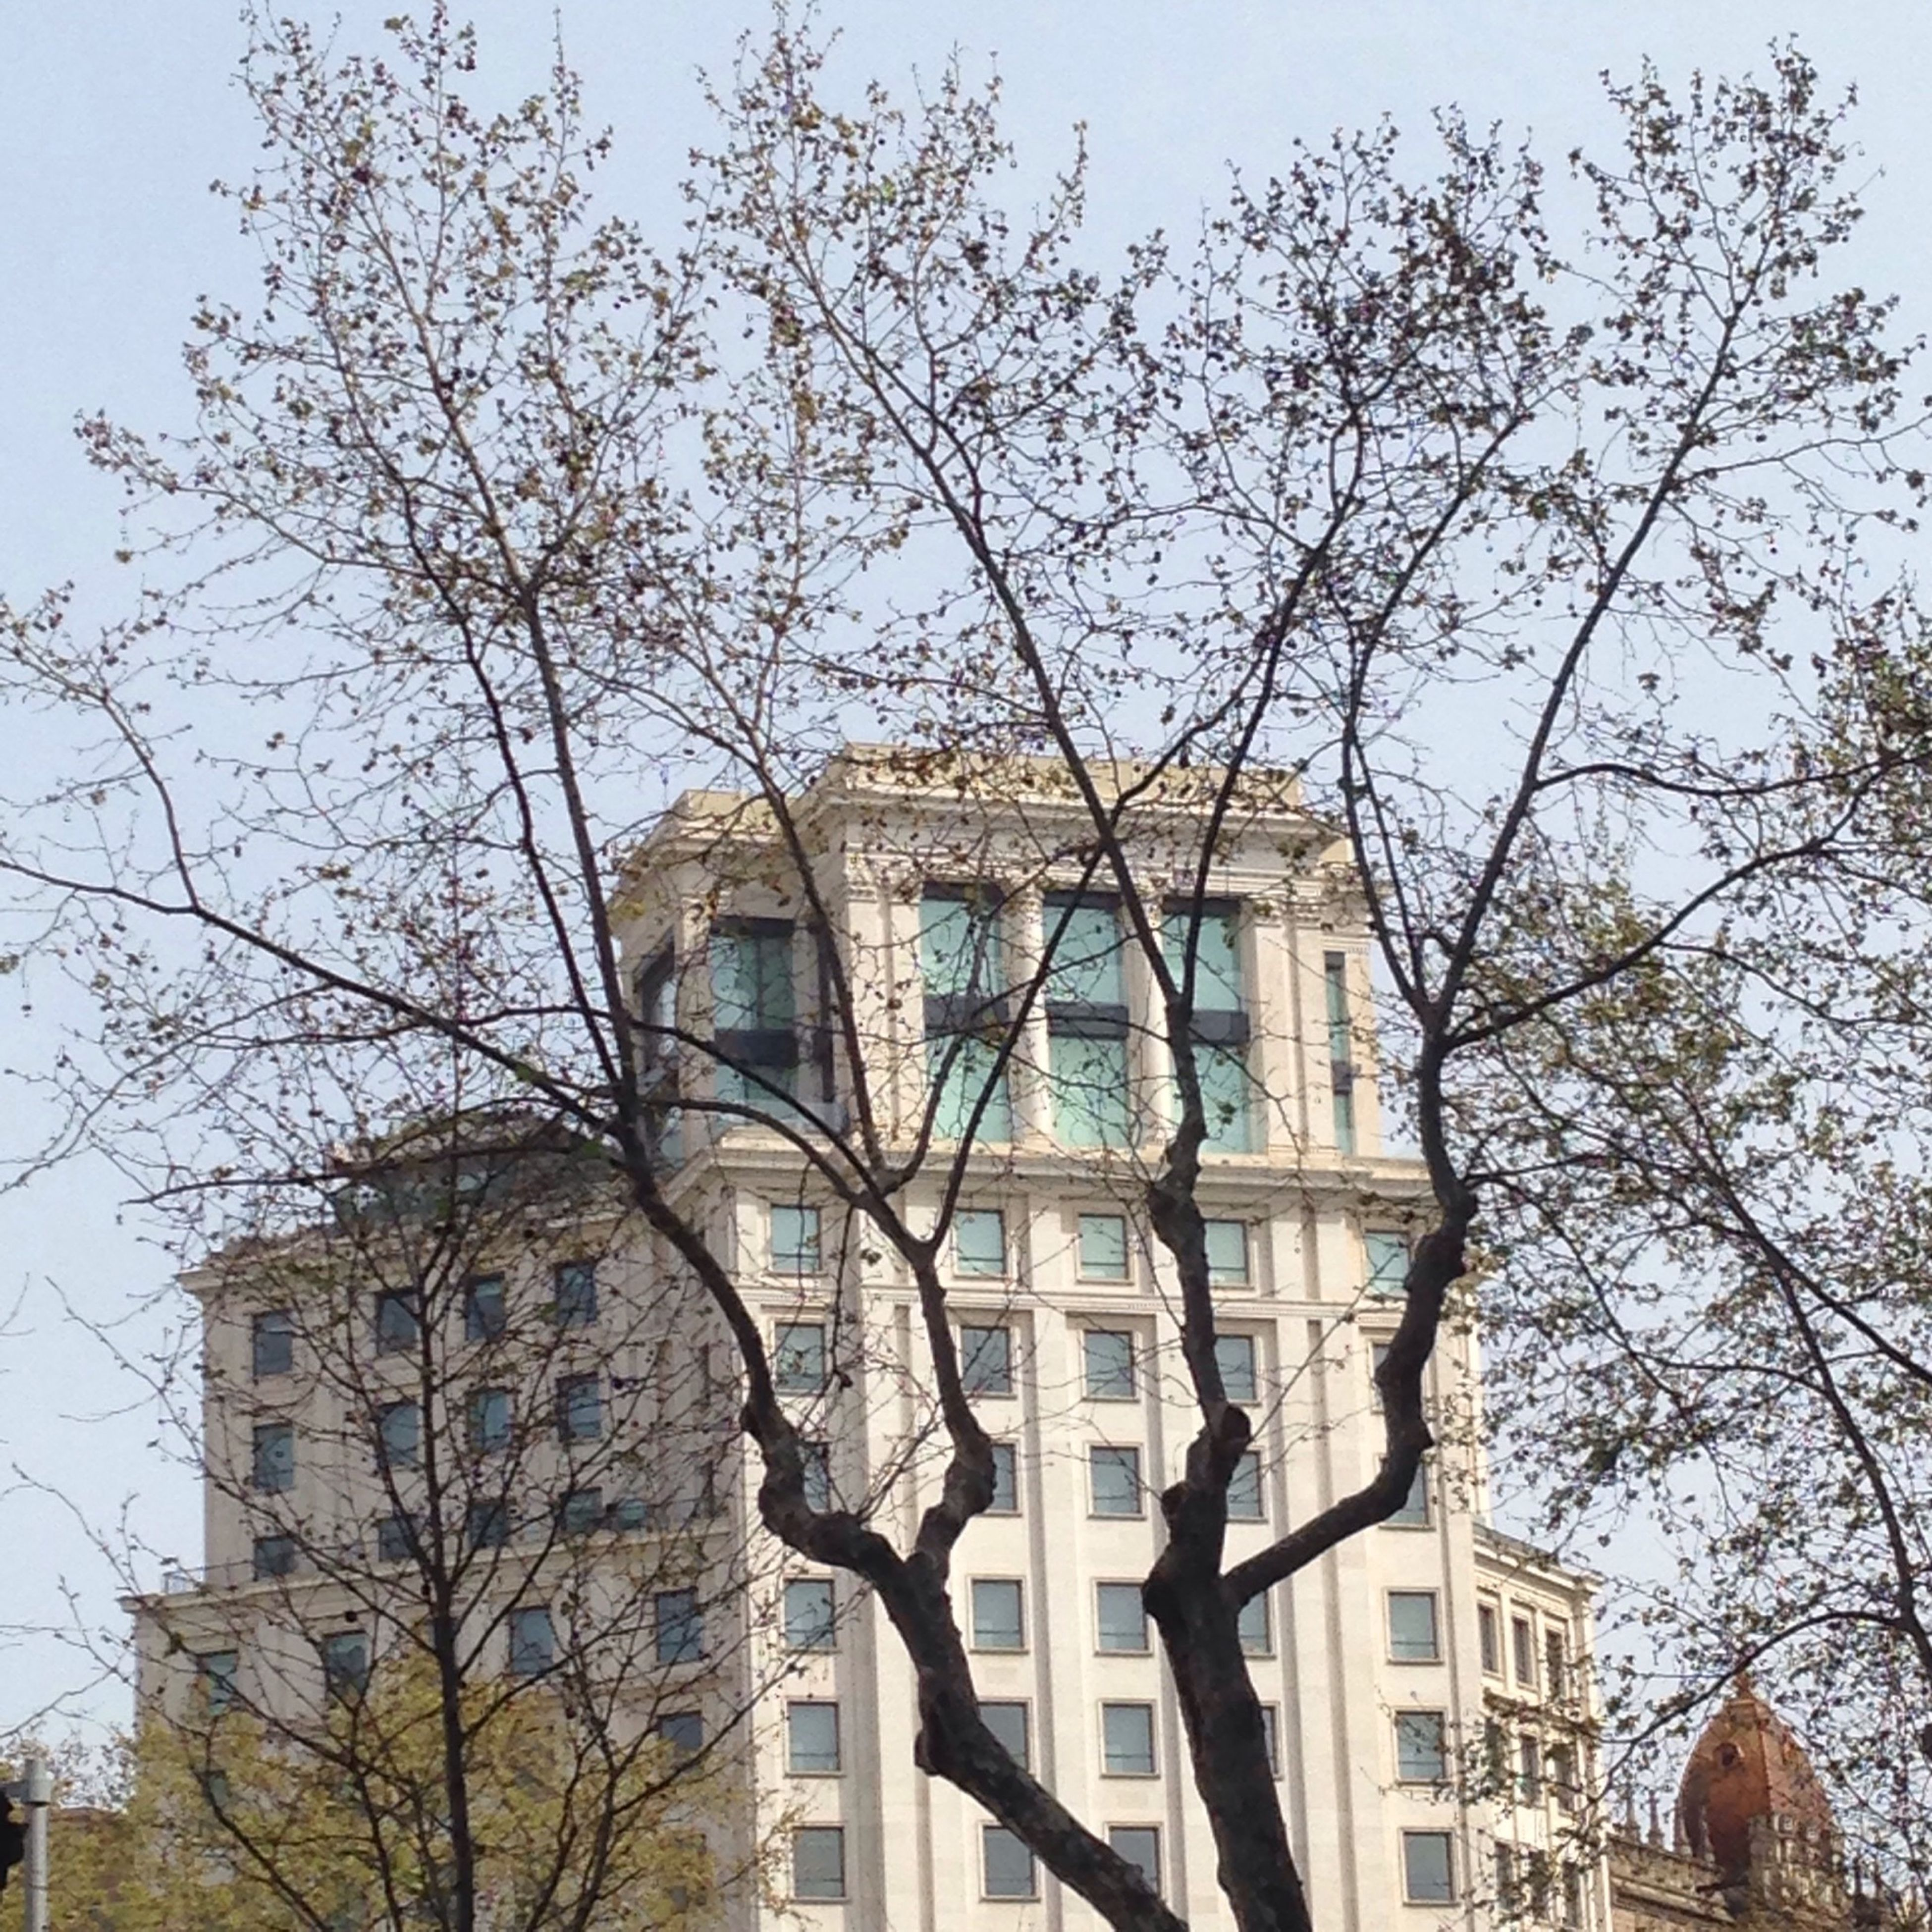 architecture, building exterior, built structure, low angle view, tree, branch, bare tree, window, sky, clear sky, building, house, residential building, residential structure, day, outdoors, no people, city, facade, blue